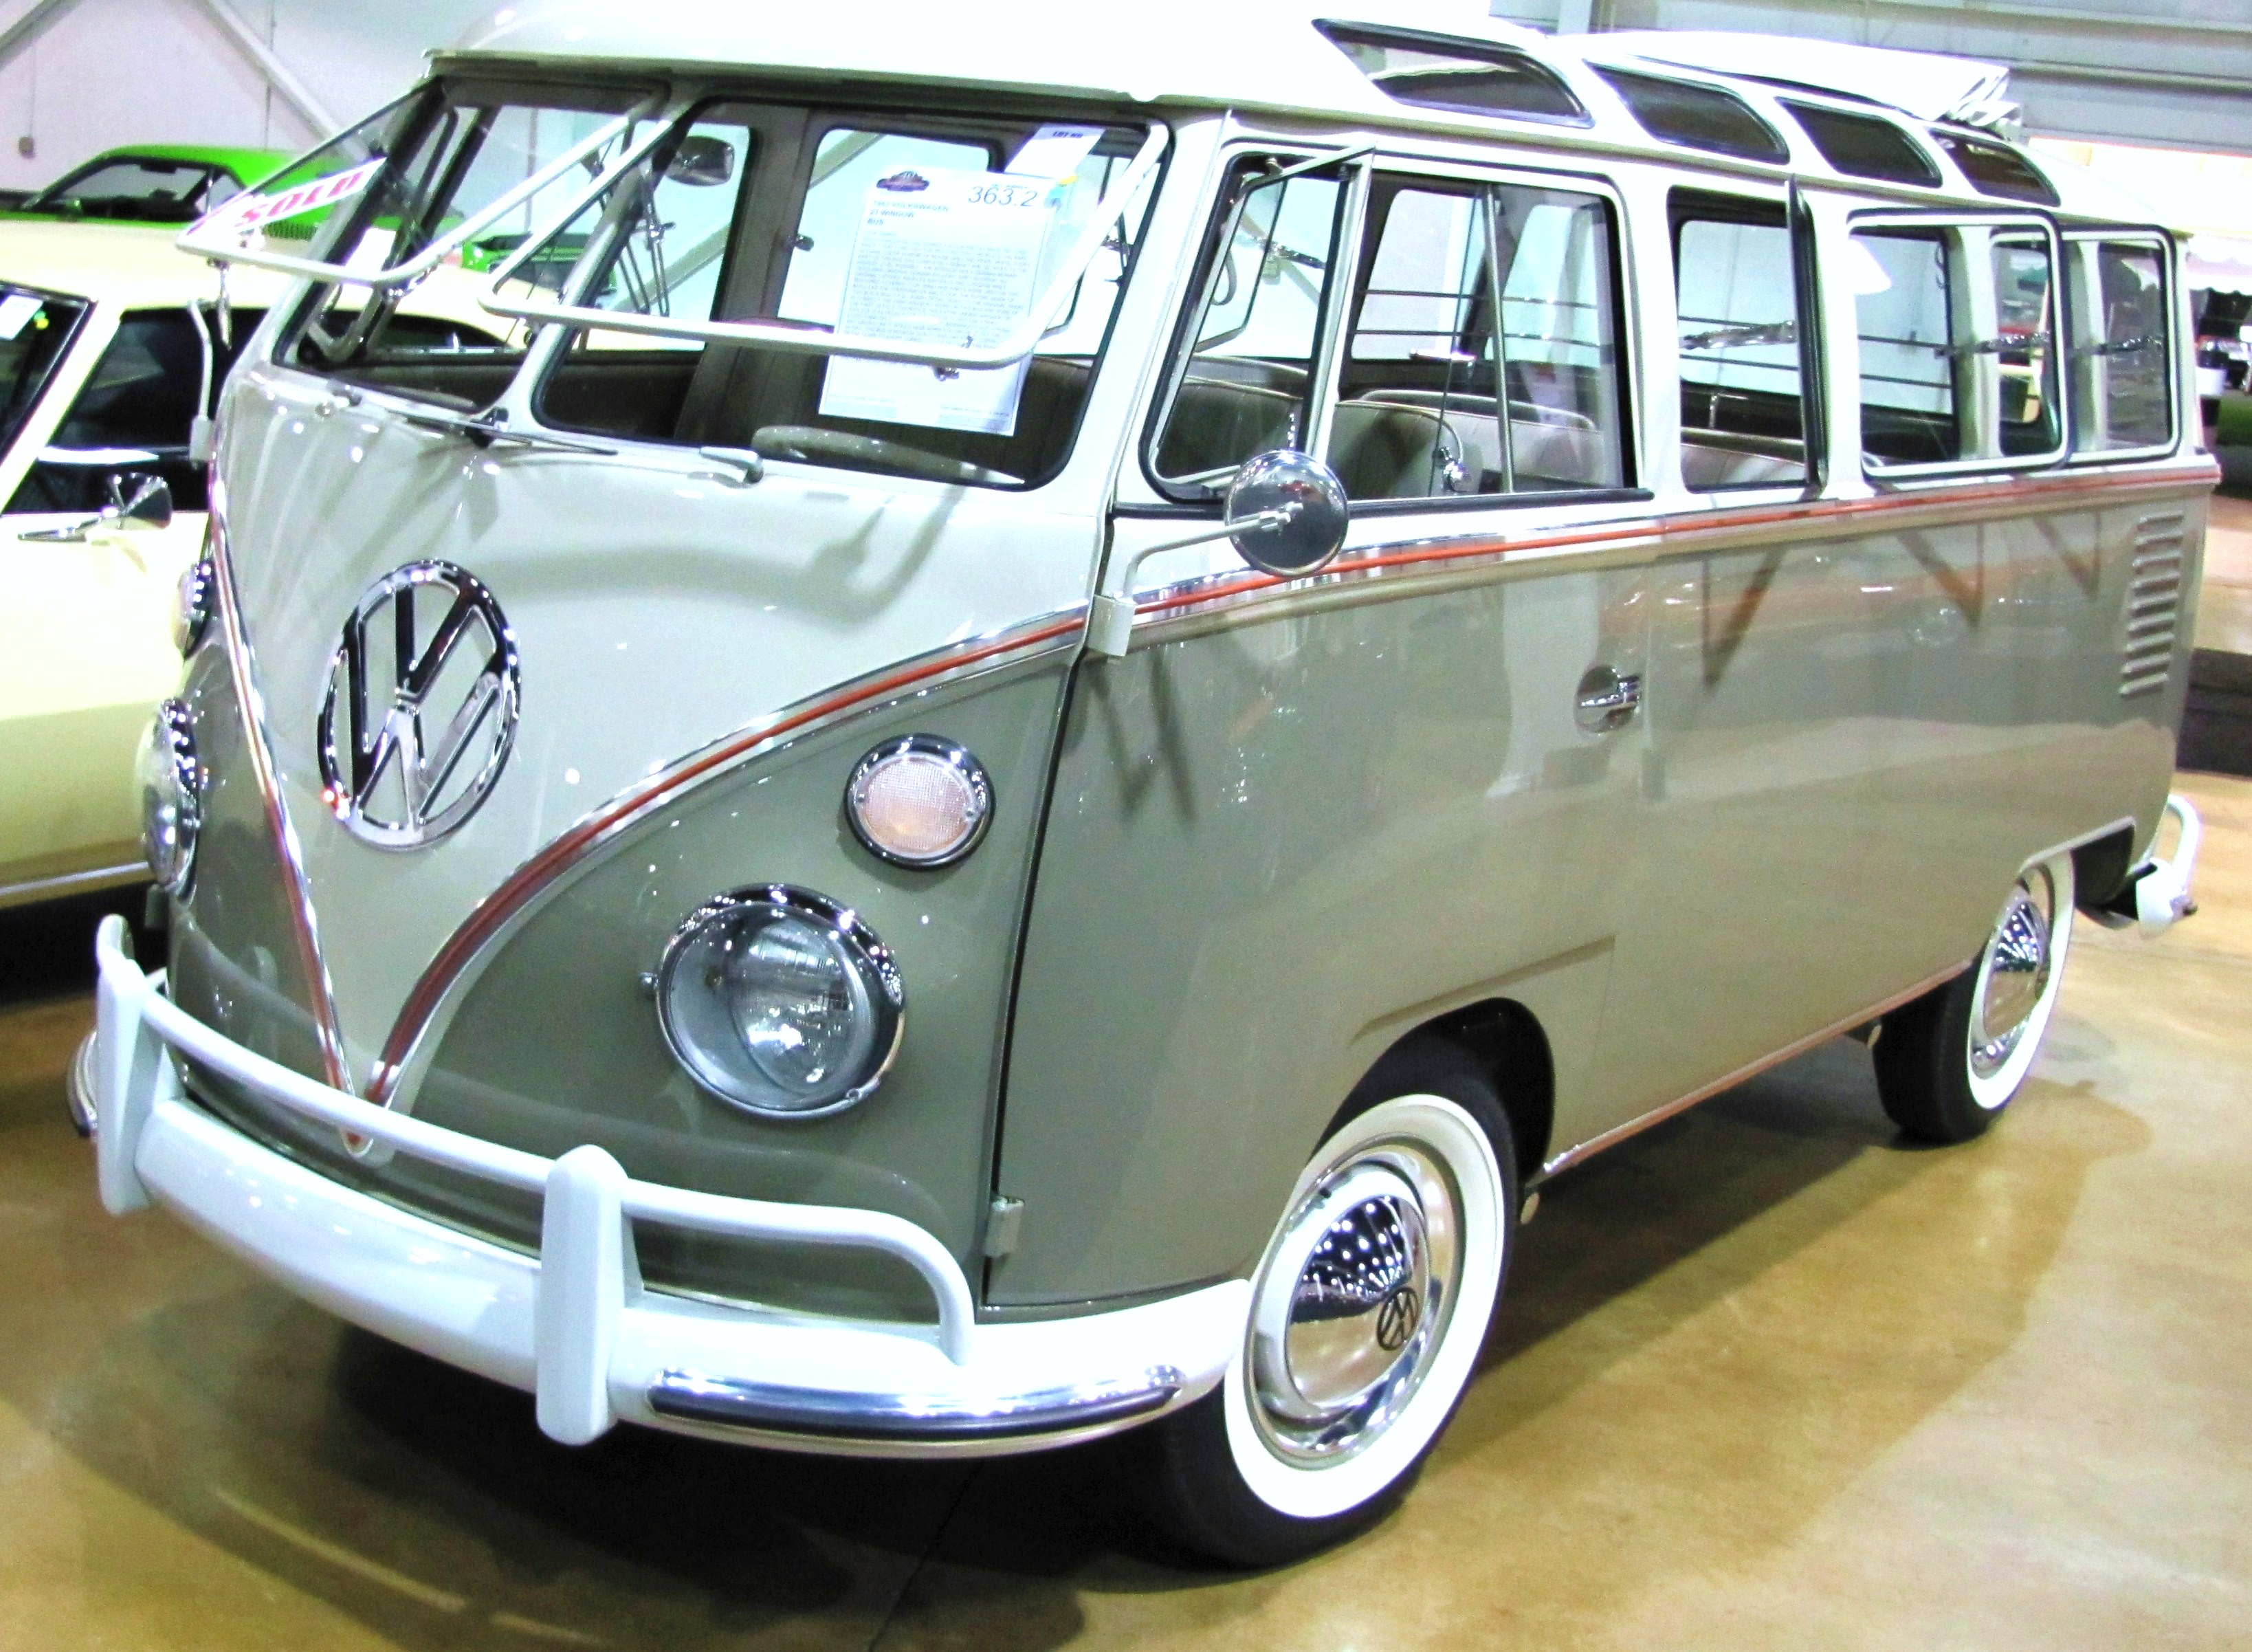 Still groovy, the VW microbus turns 65 - ClicCars.com Journal